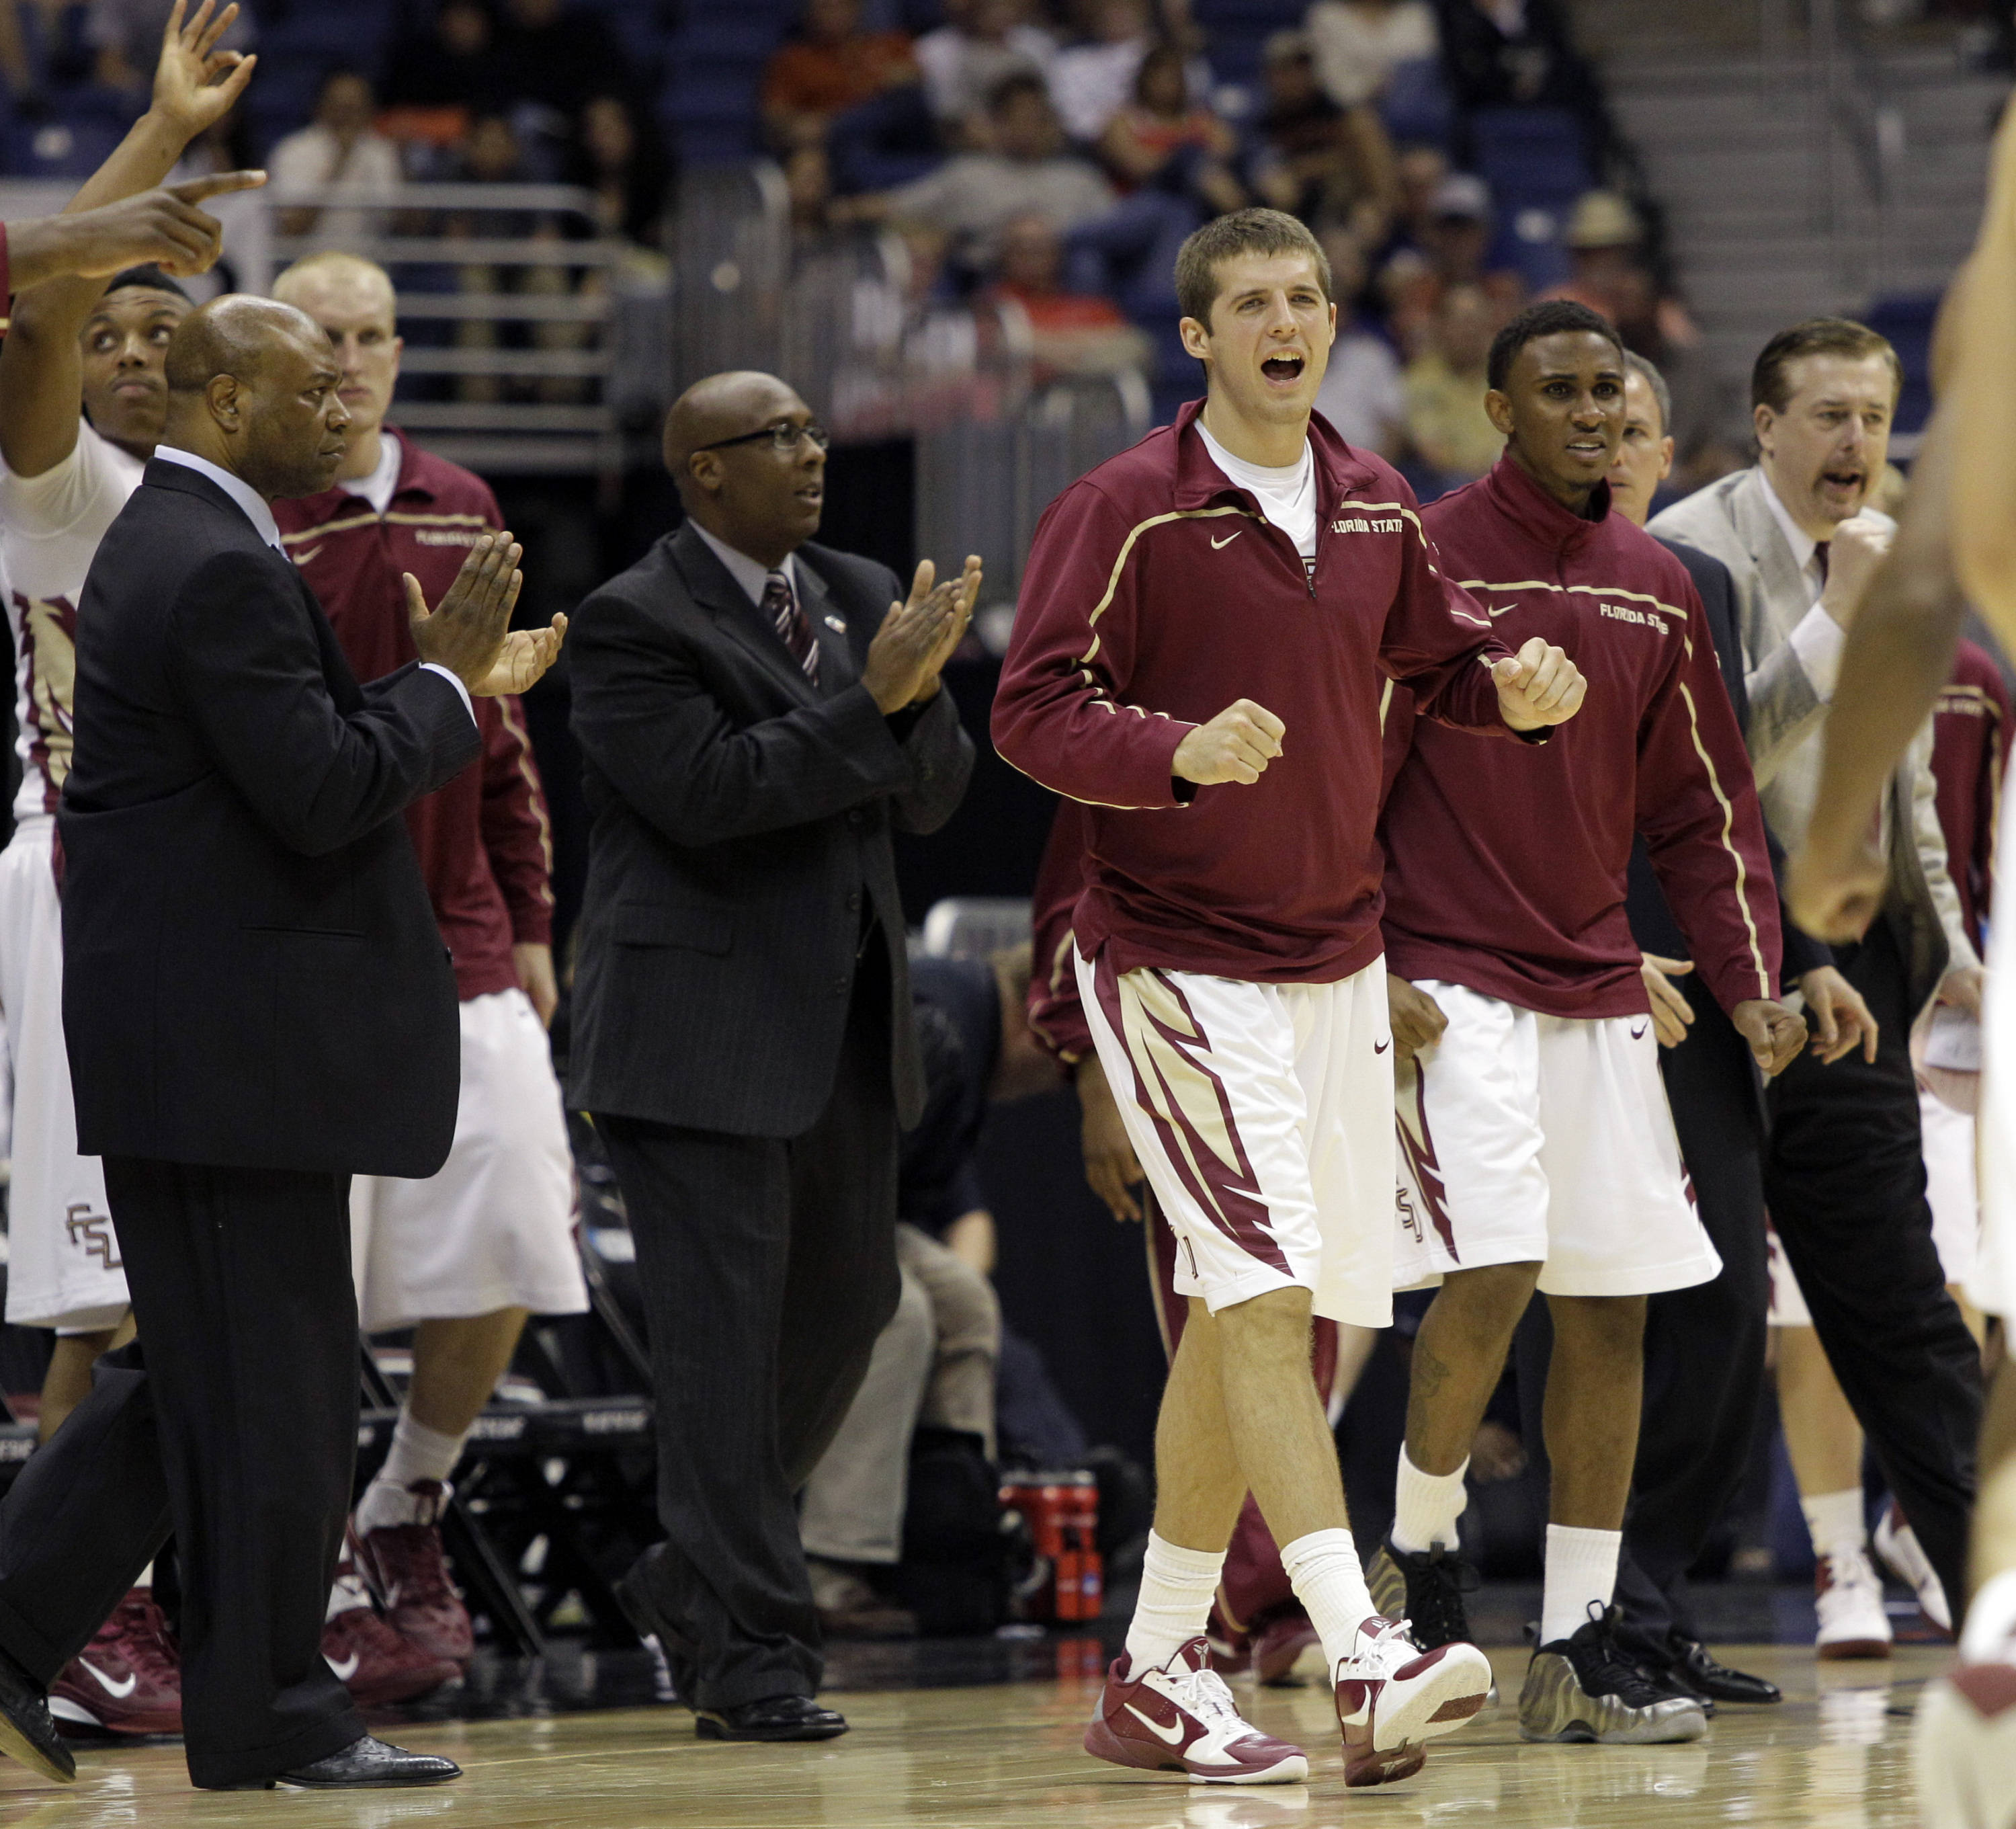 The Florida State bench reacts to a play against the Virginia Commonwealth. (AP Photo/Tony Gutierrez)